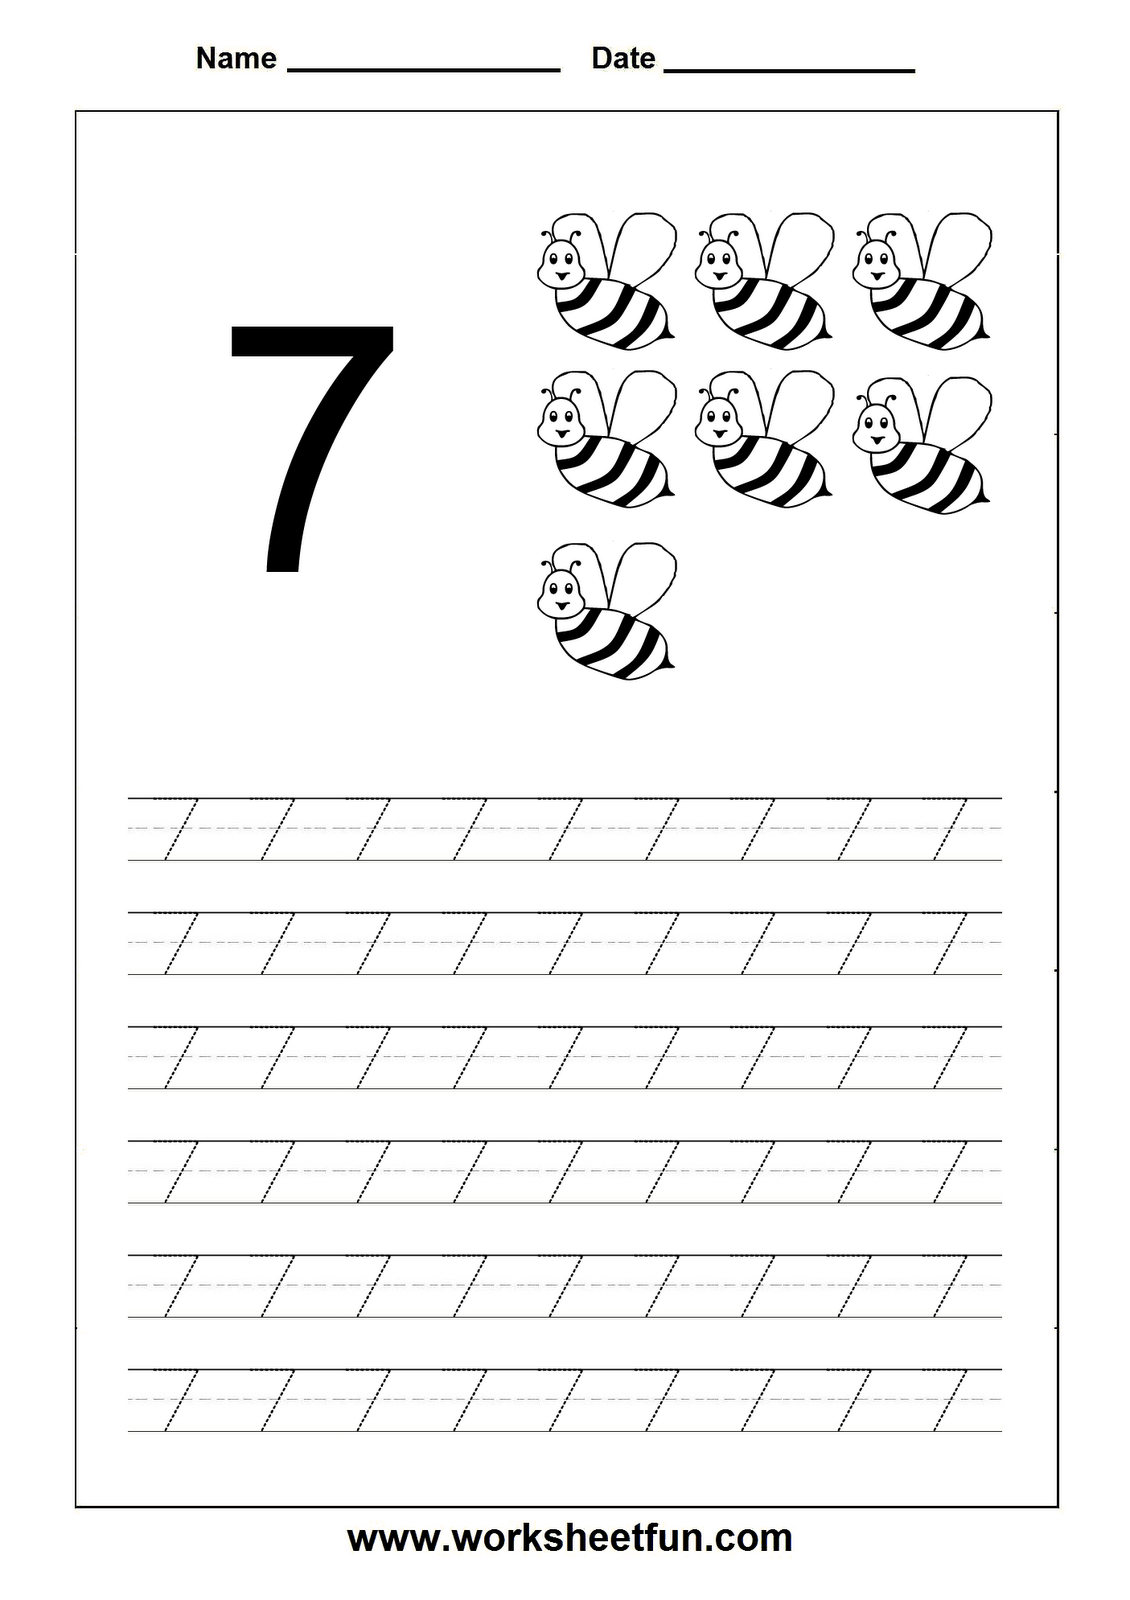 Pin On Number Worksheets